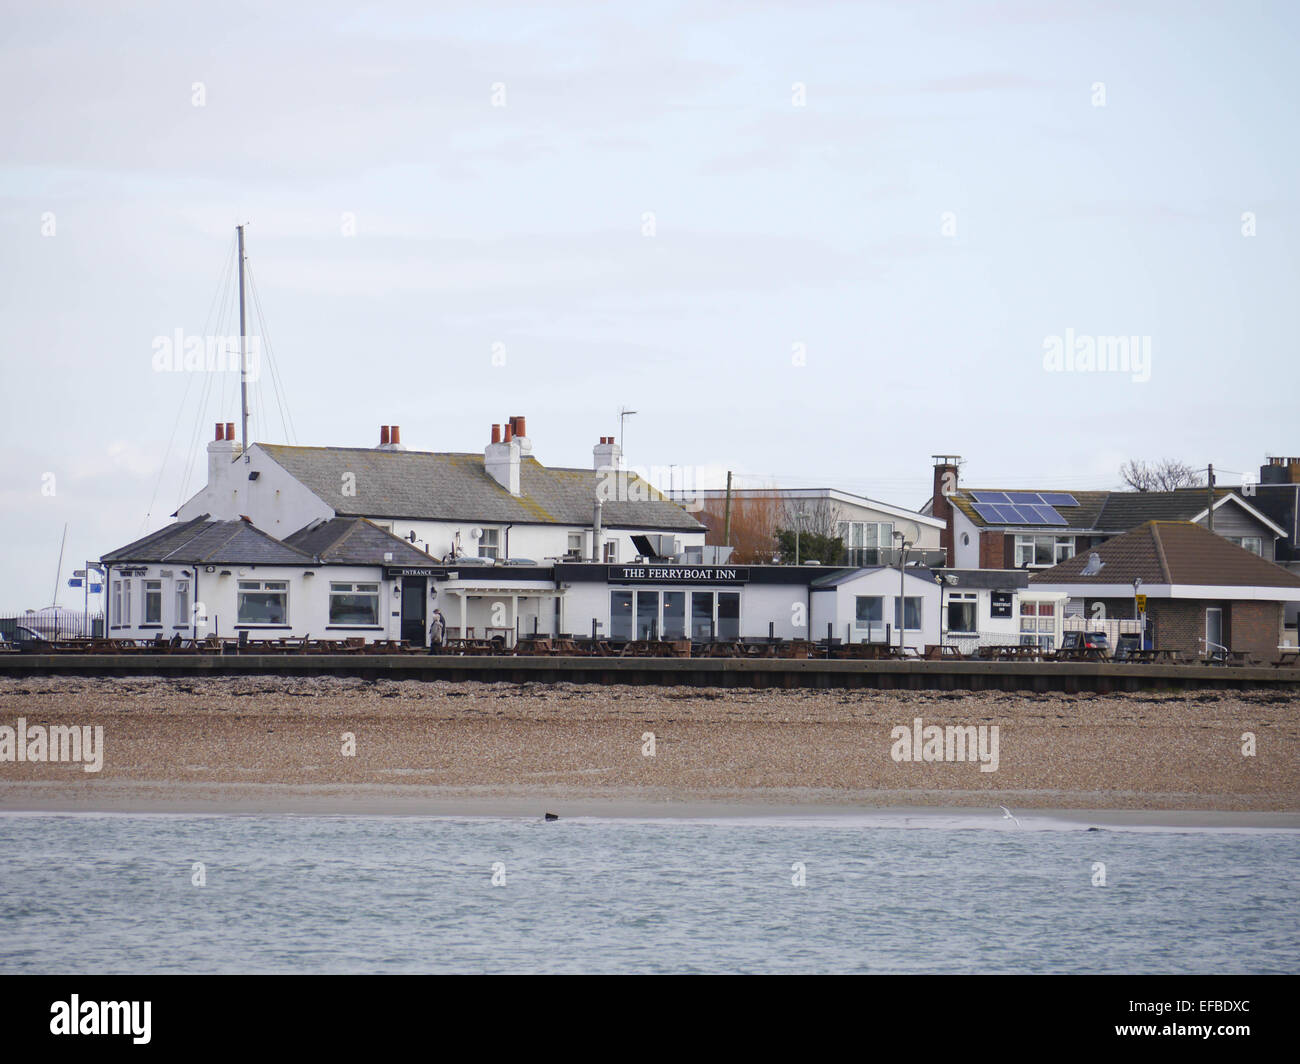 The ferry boat inn public house and restaurant on Hayling Island, Hampshire, England - Stock Image